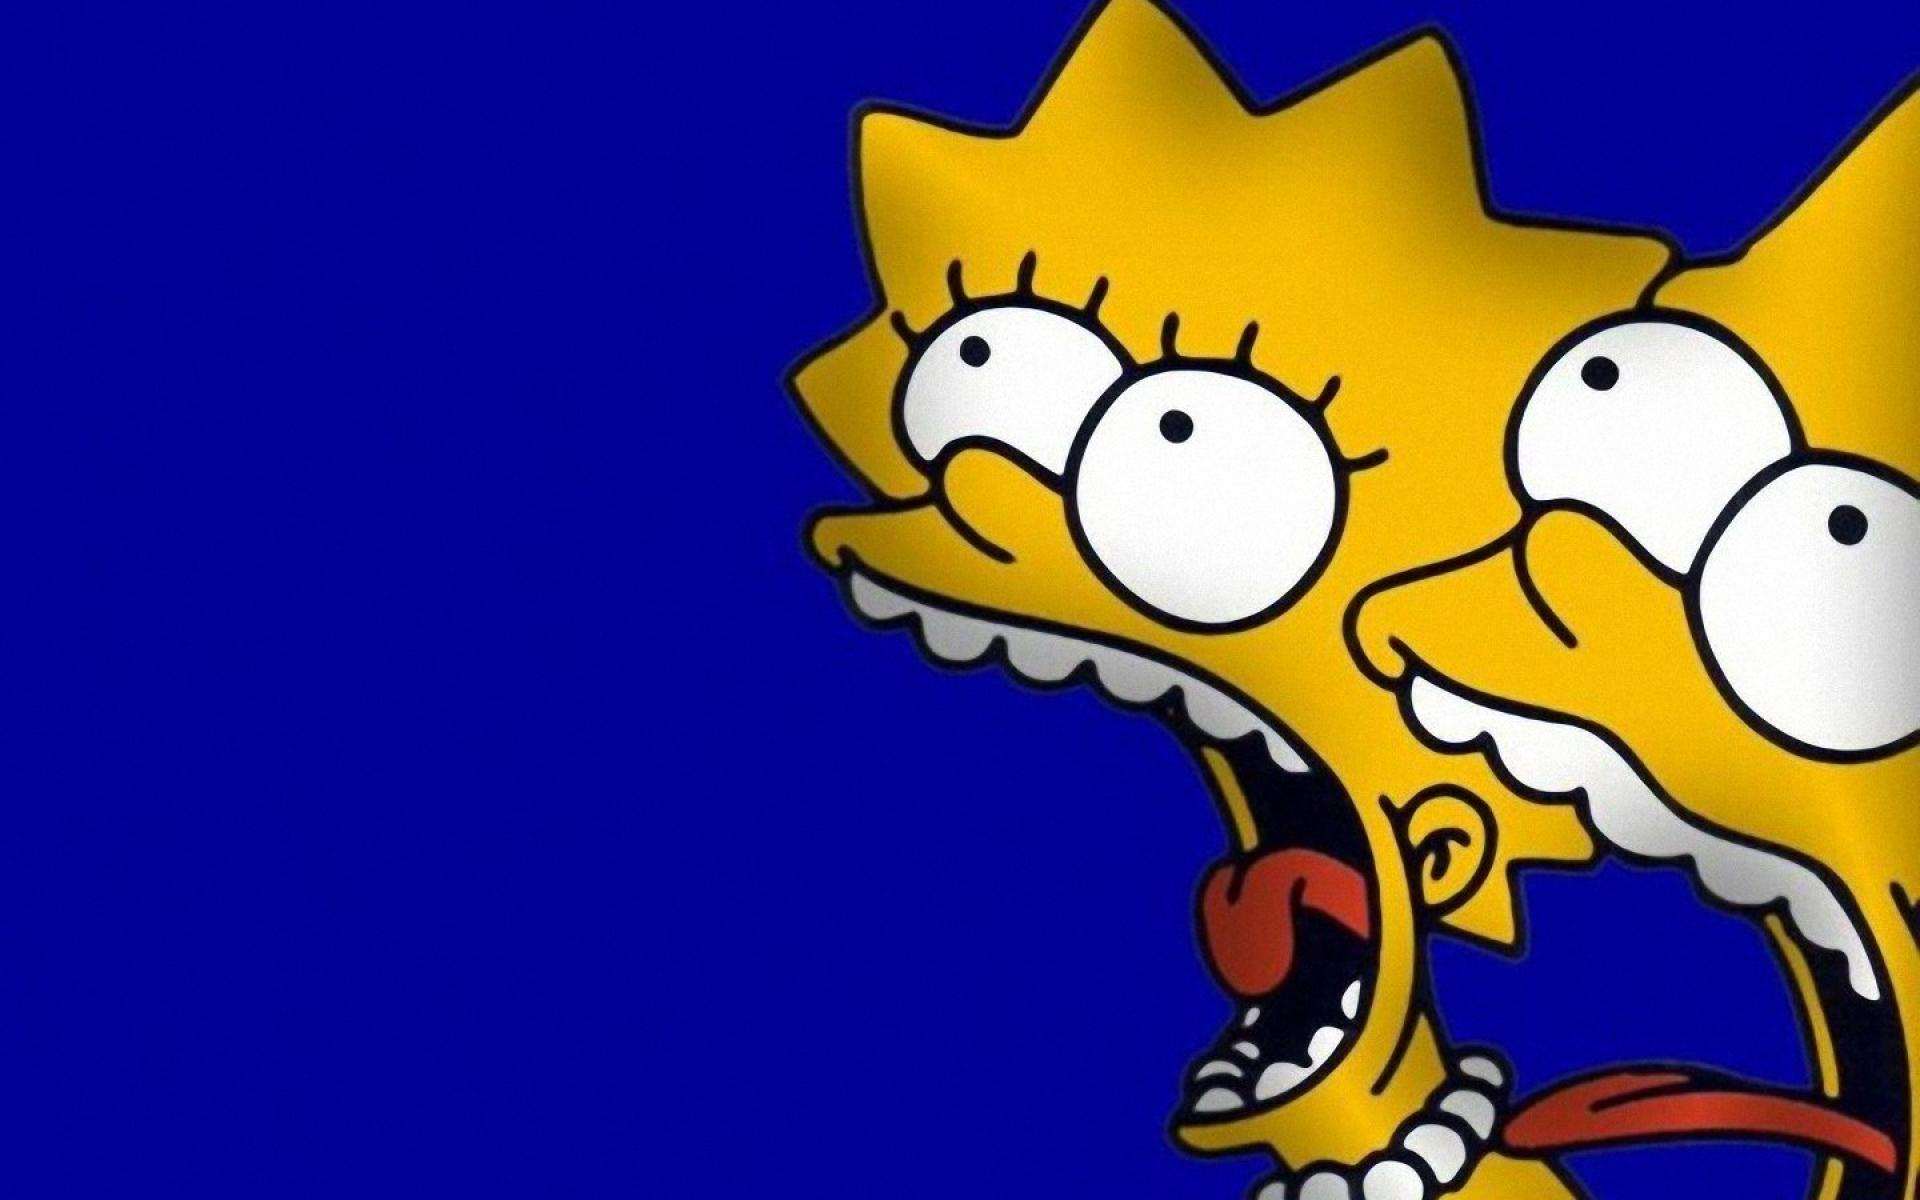 The Simpsons Wallpaper   Wallpaper High Definition High Quality 1920x1200